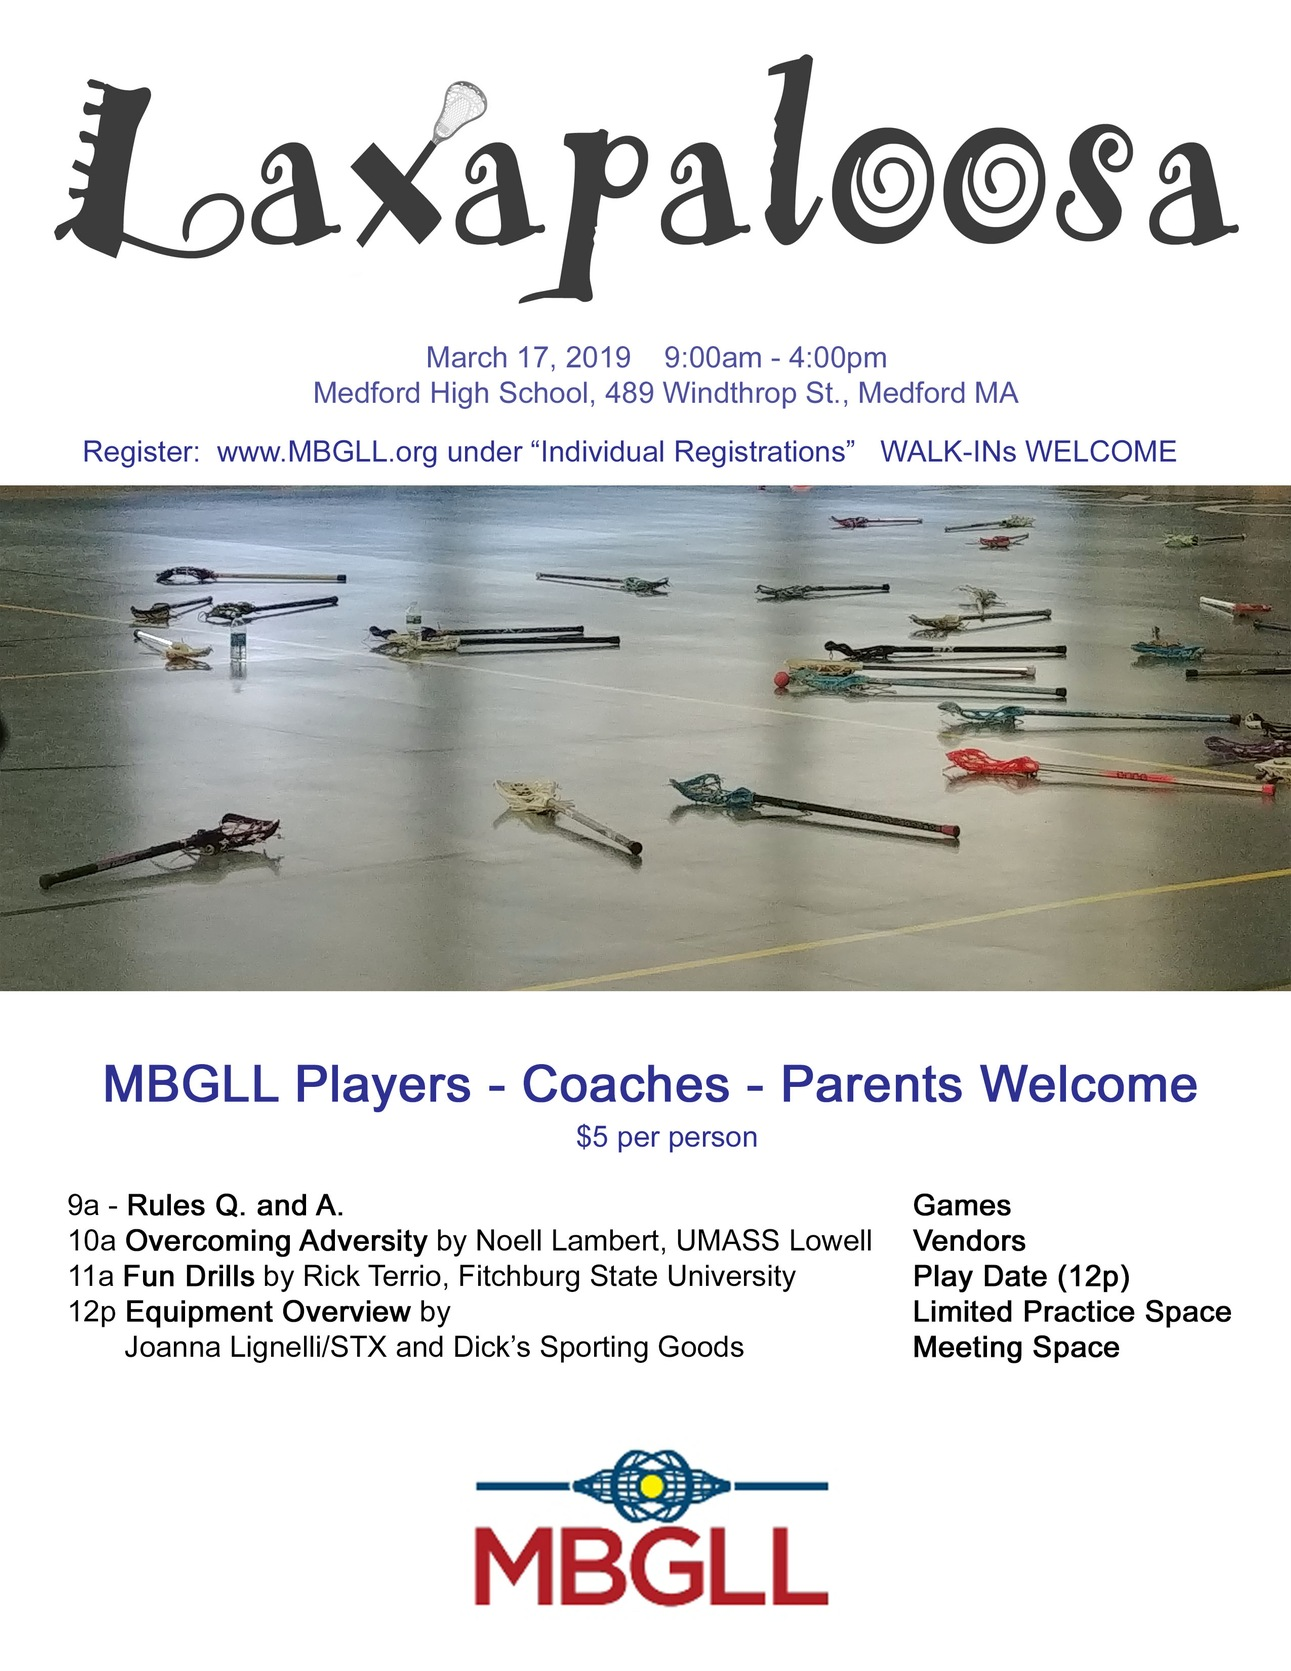 Terrio Featured Speaker At 2019 MBGLL Laxapaloosa